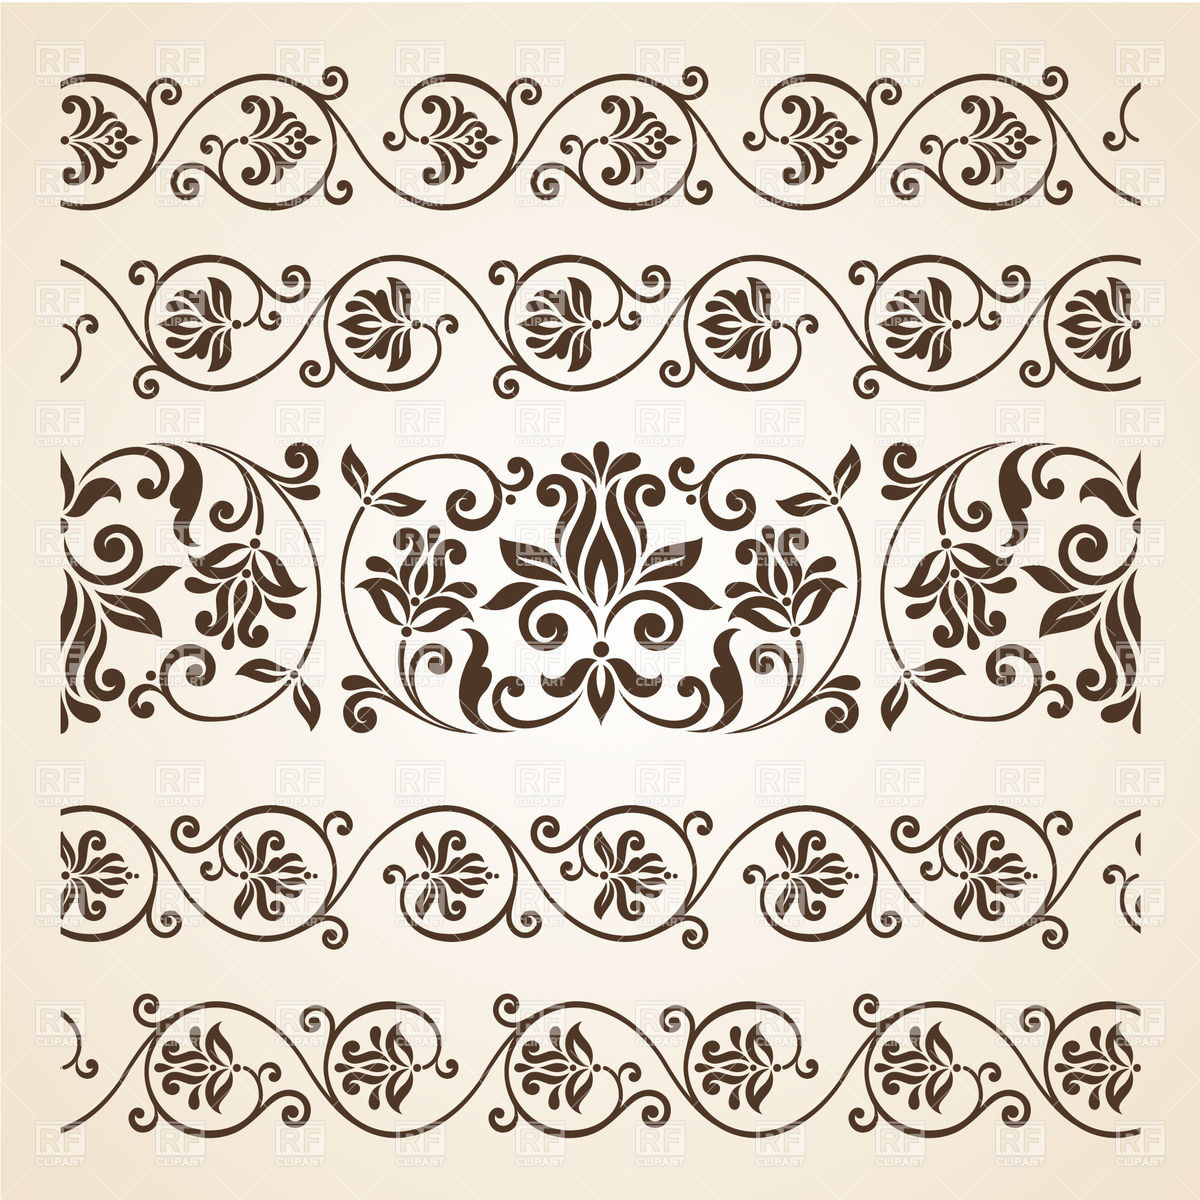 1200x1200 Collection Of Vintage Floral Borders Vector Image Vector Artwork